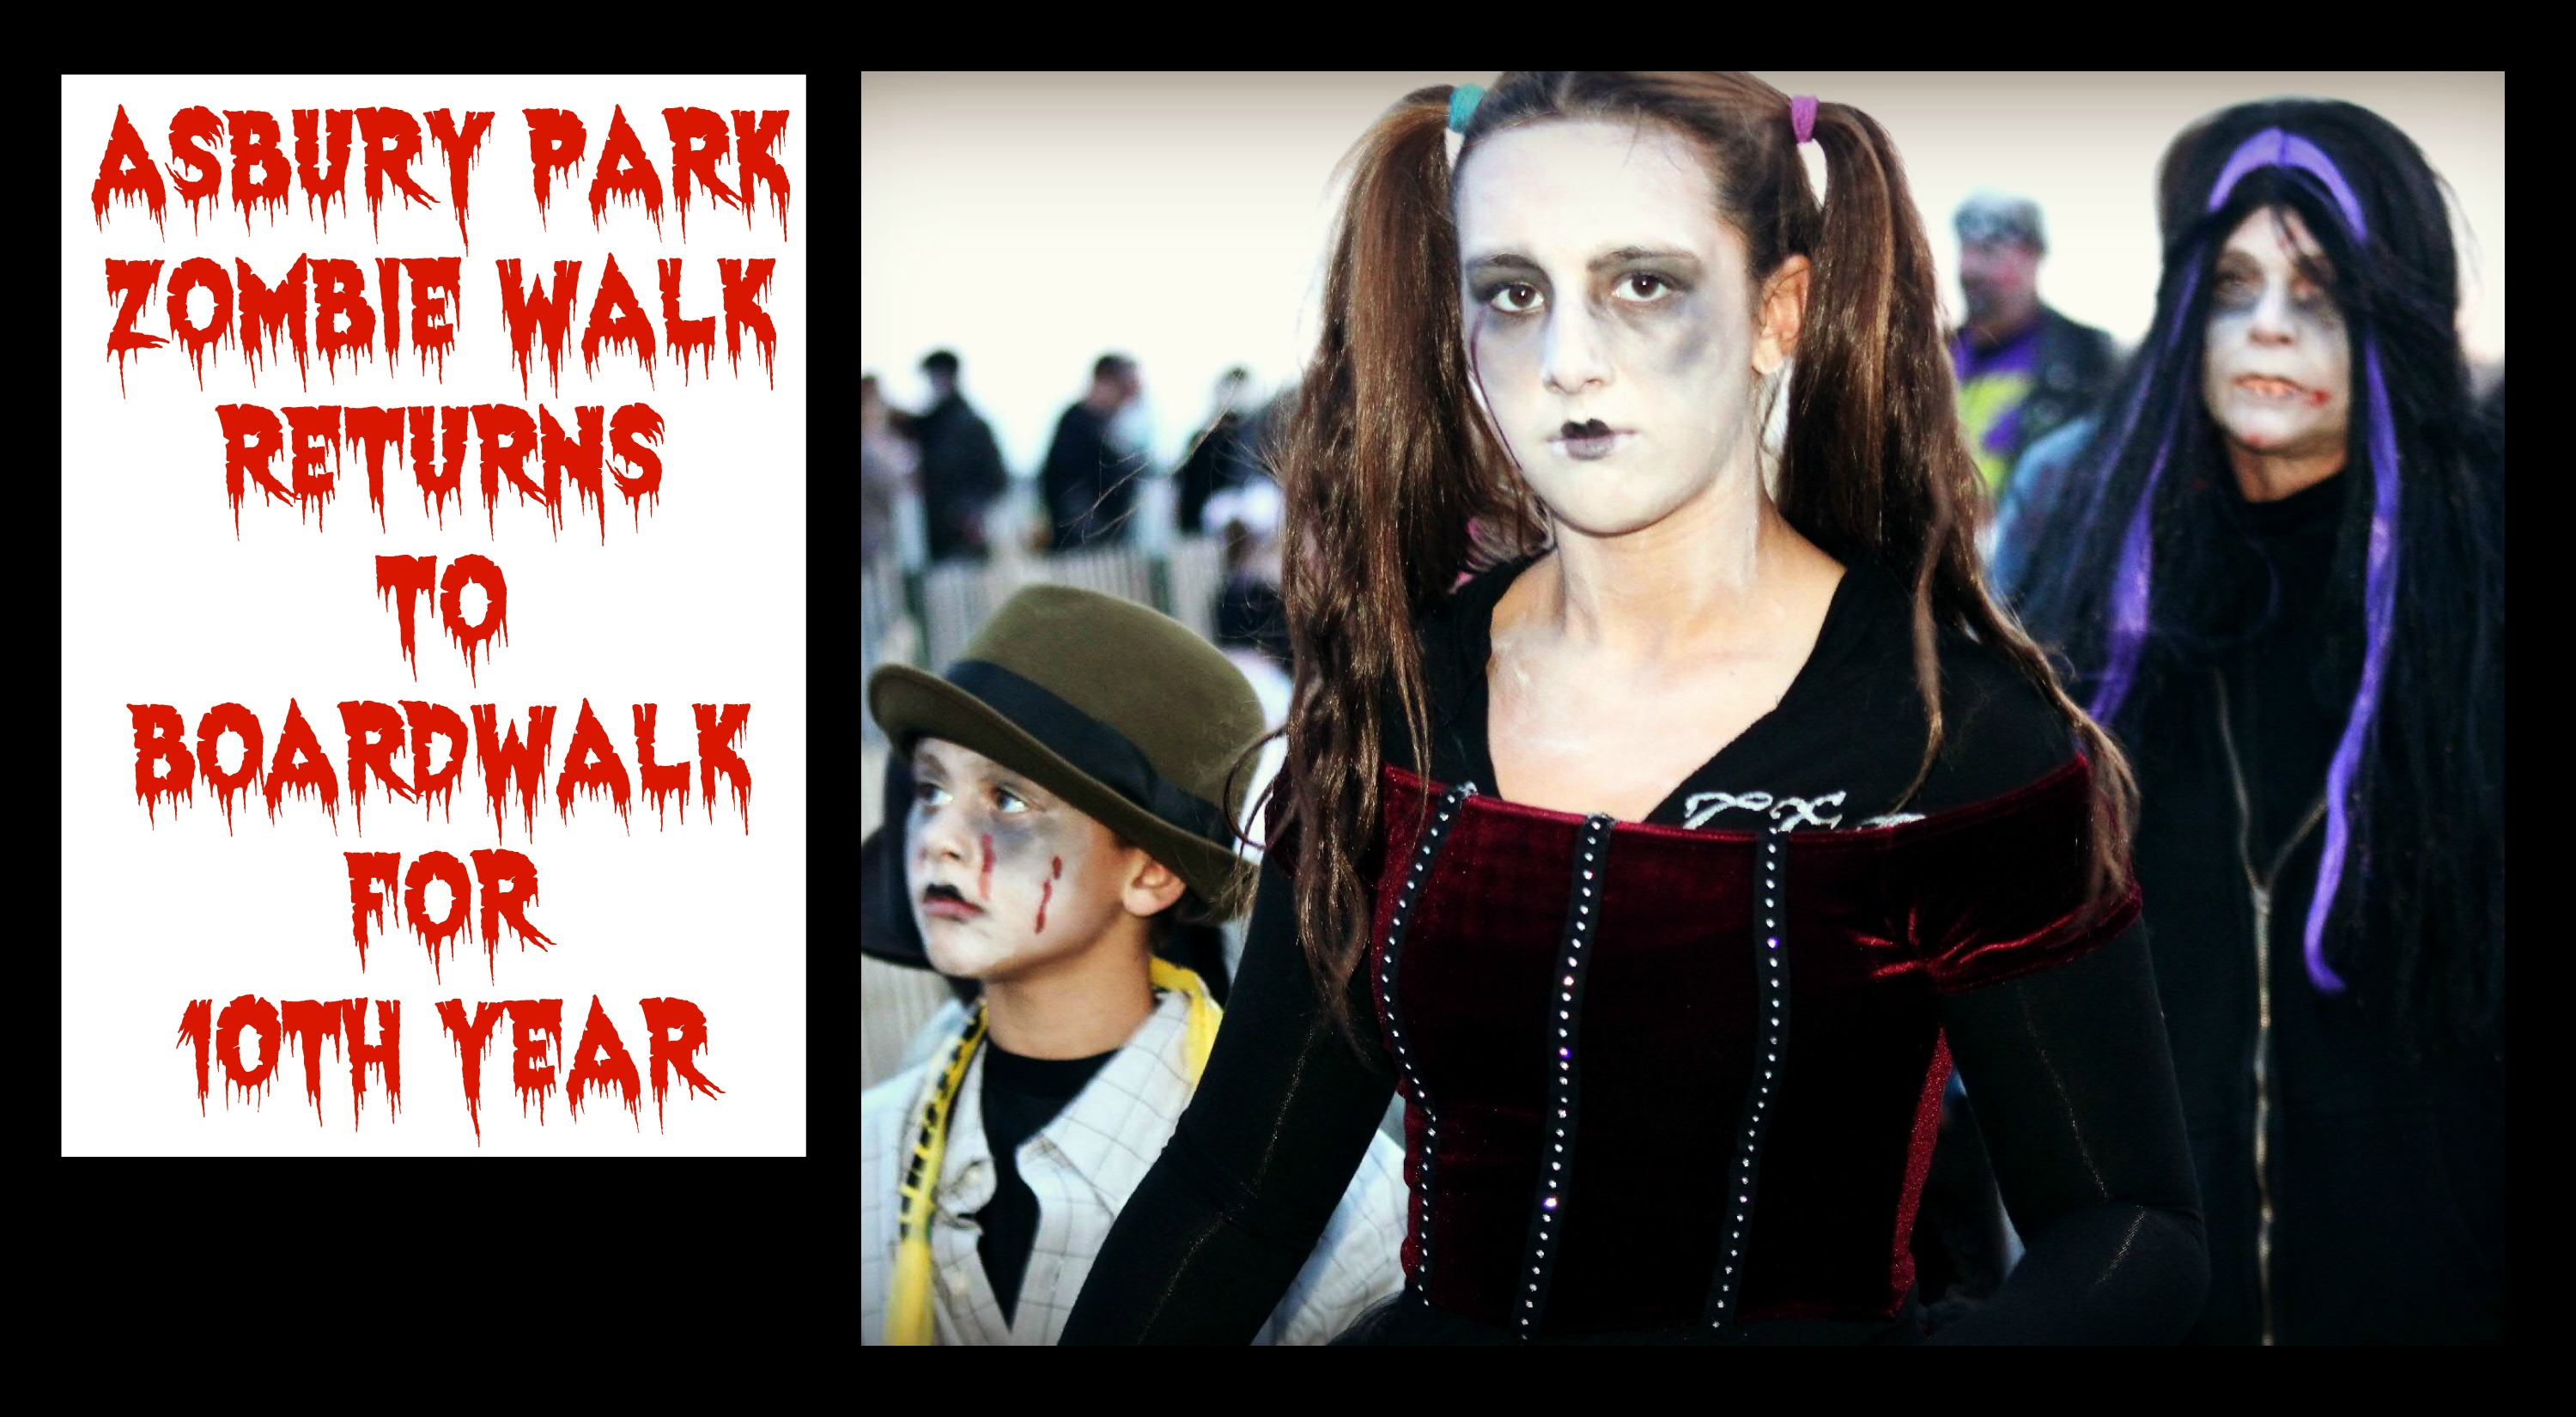 Halloween Activities in New Jersey Archives - Things to Do In New ...